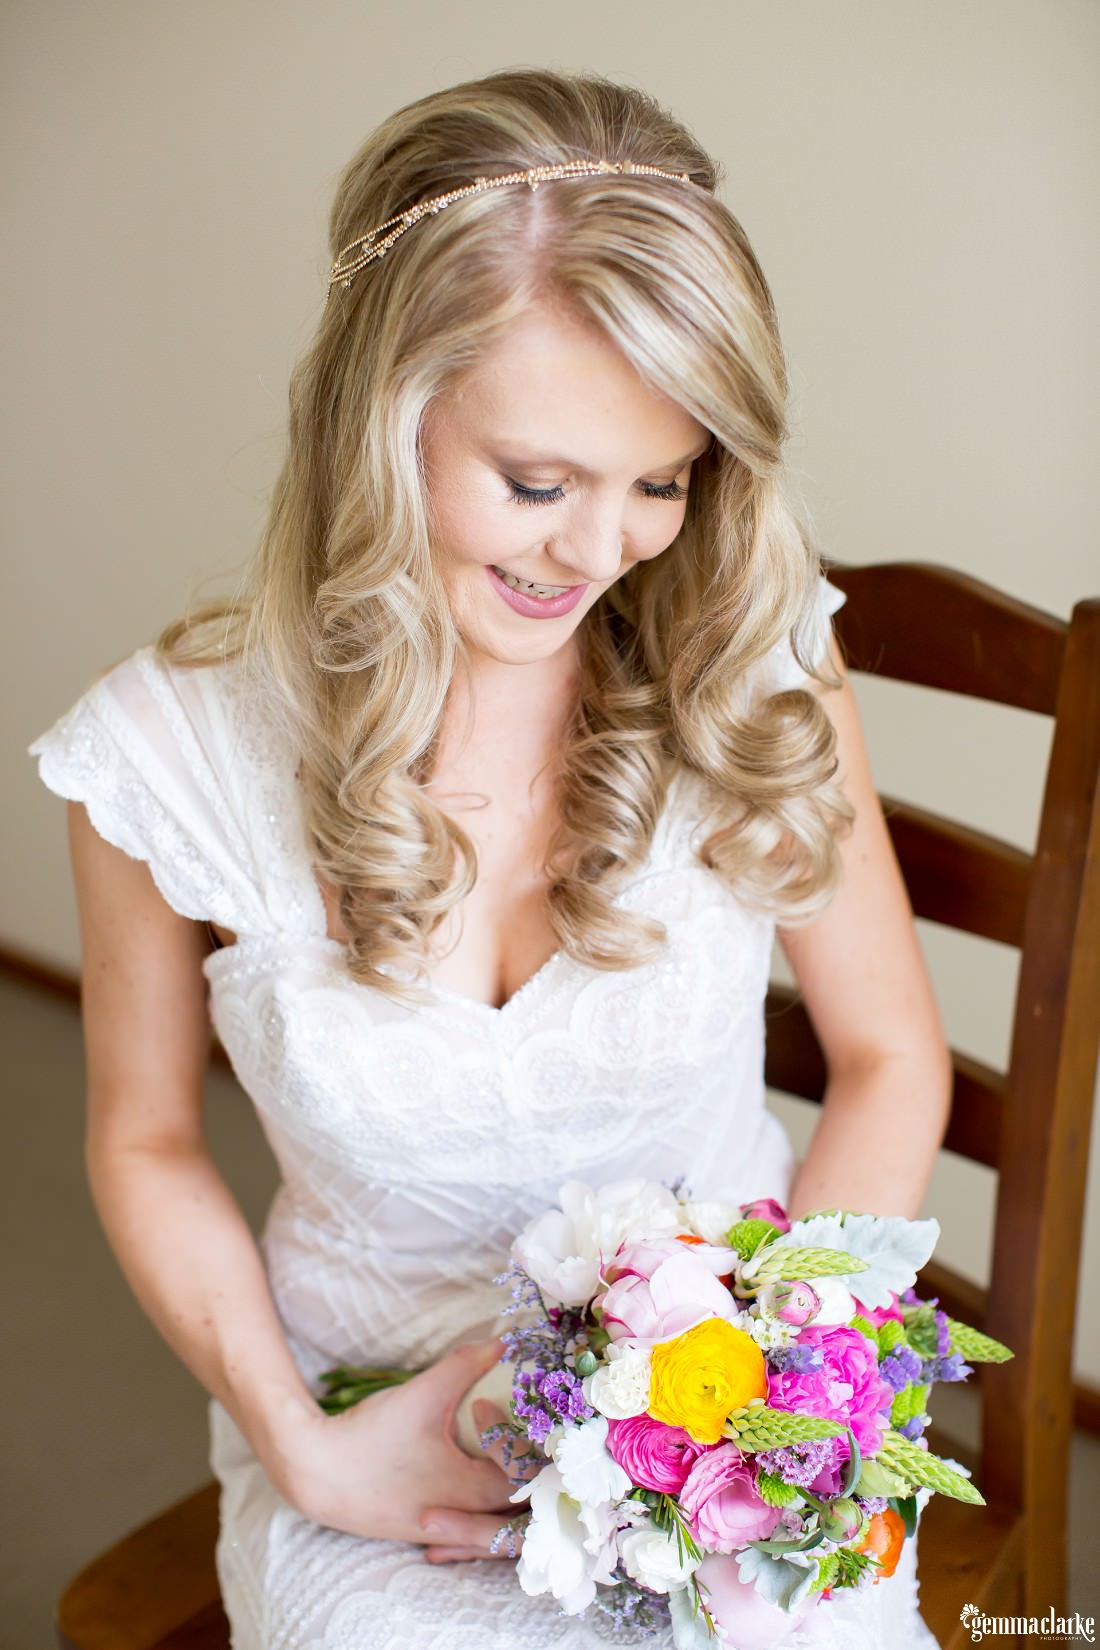 A bride in a lacy white gown sitting on a chair and looking down at the brightly coloured floral bouquet that she is holding